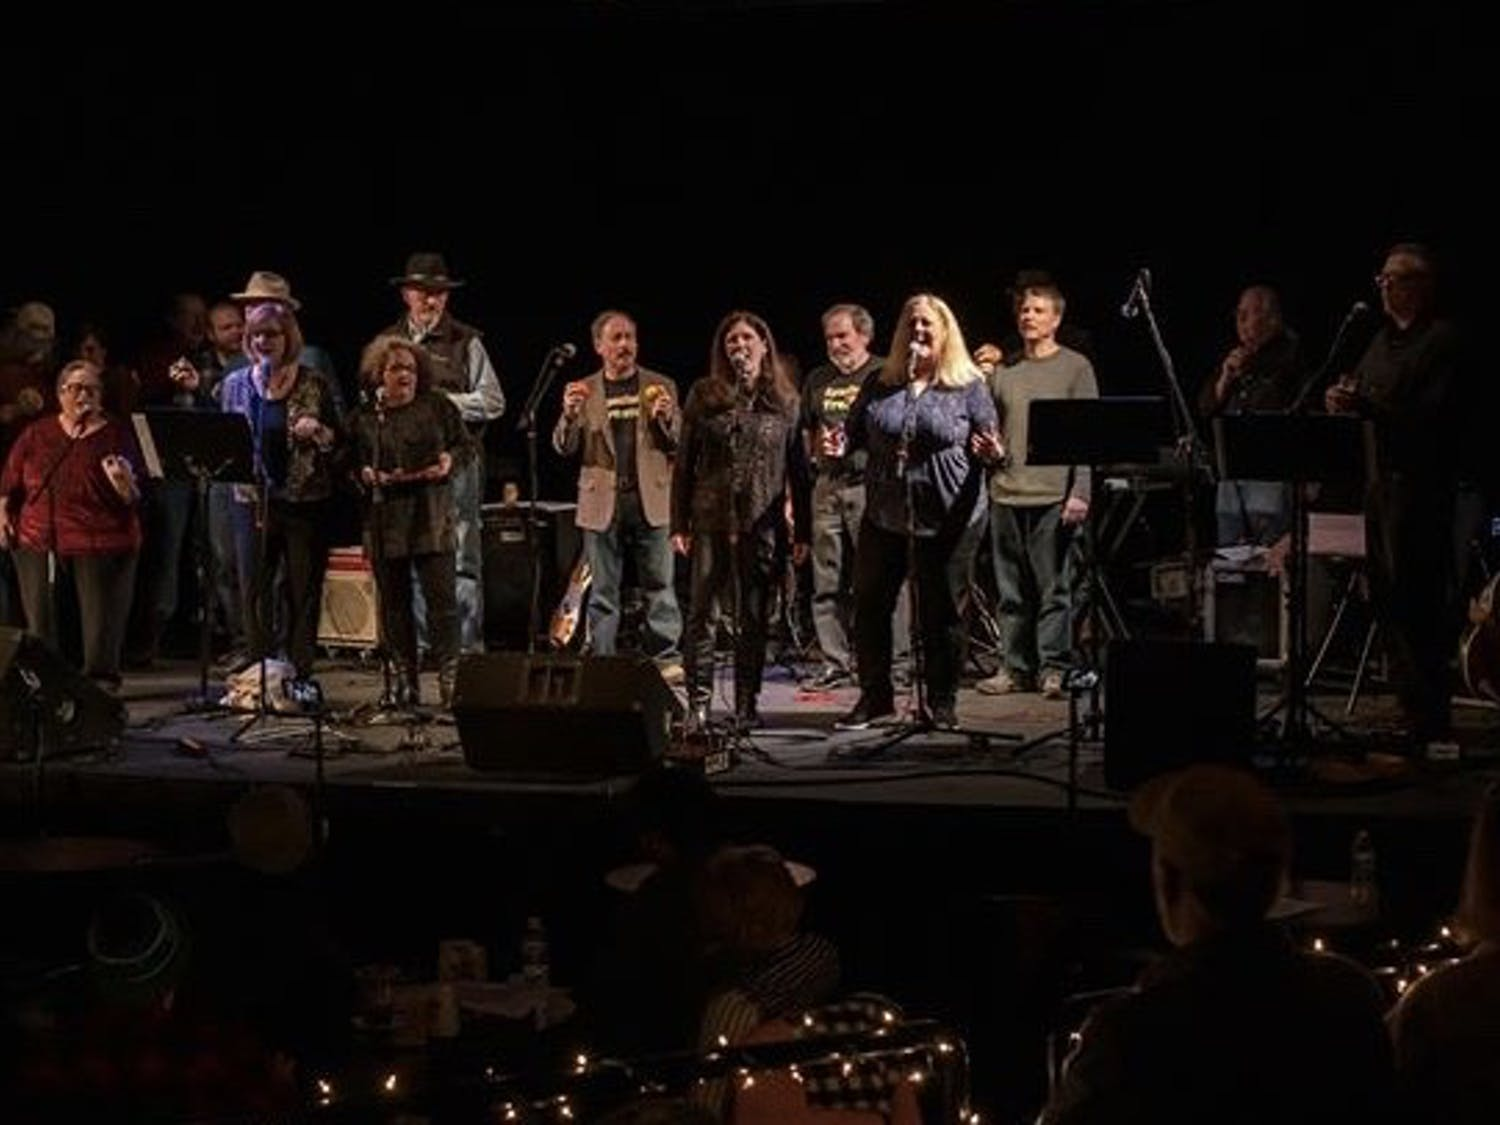 A previous concert hosted by Special Treats at The ArtsCenter in Carrboro. Photo courtesy of Dan Friedman.